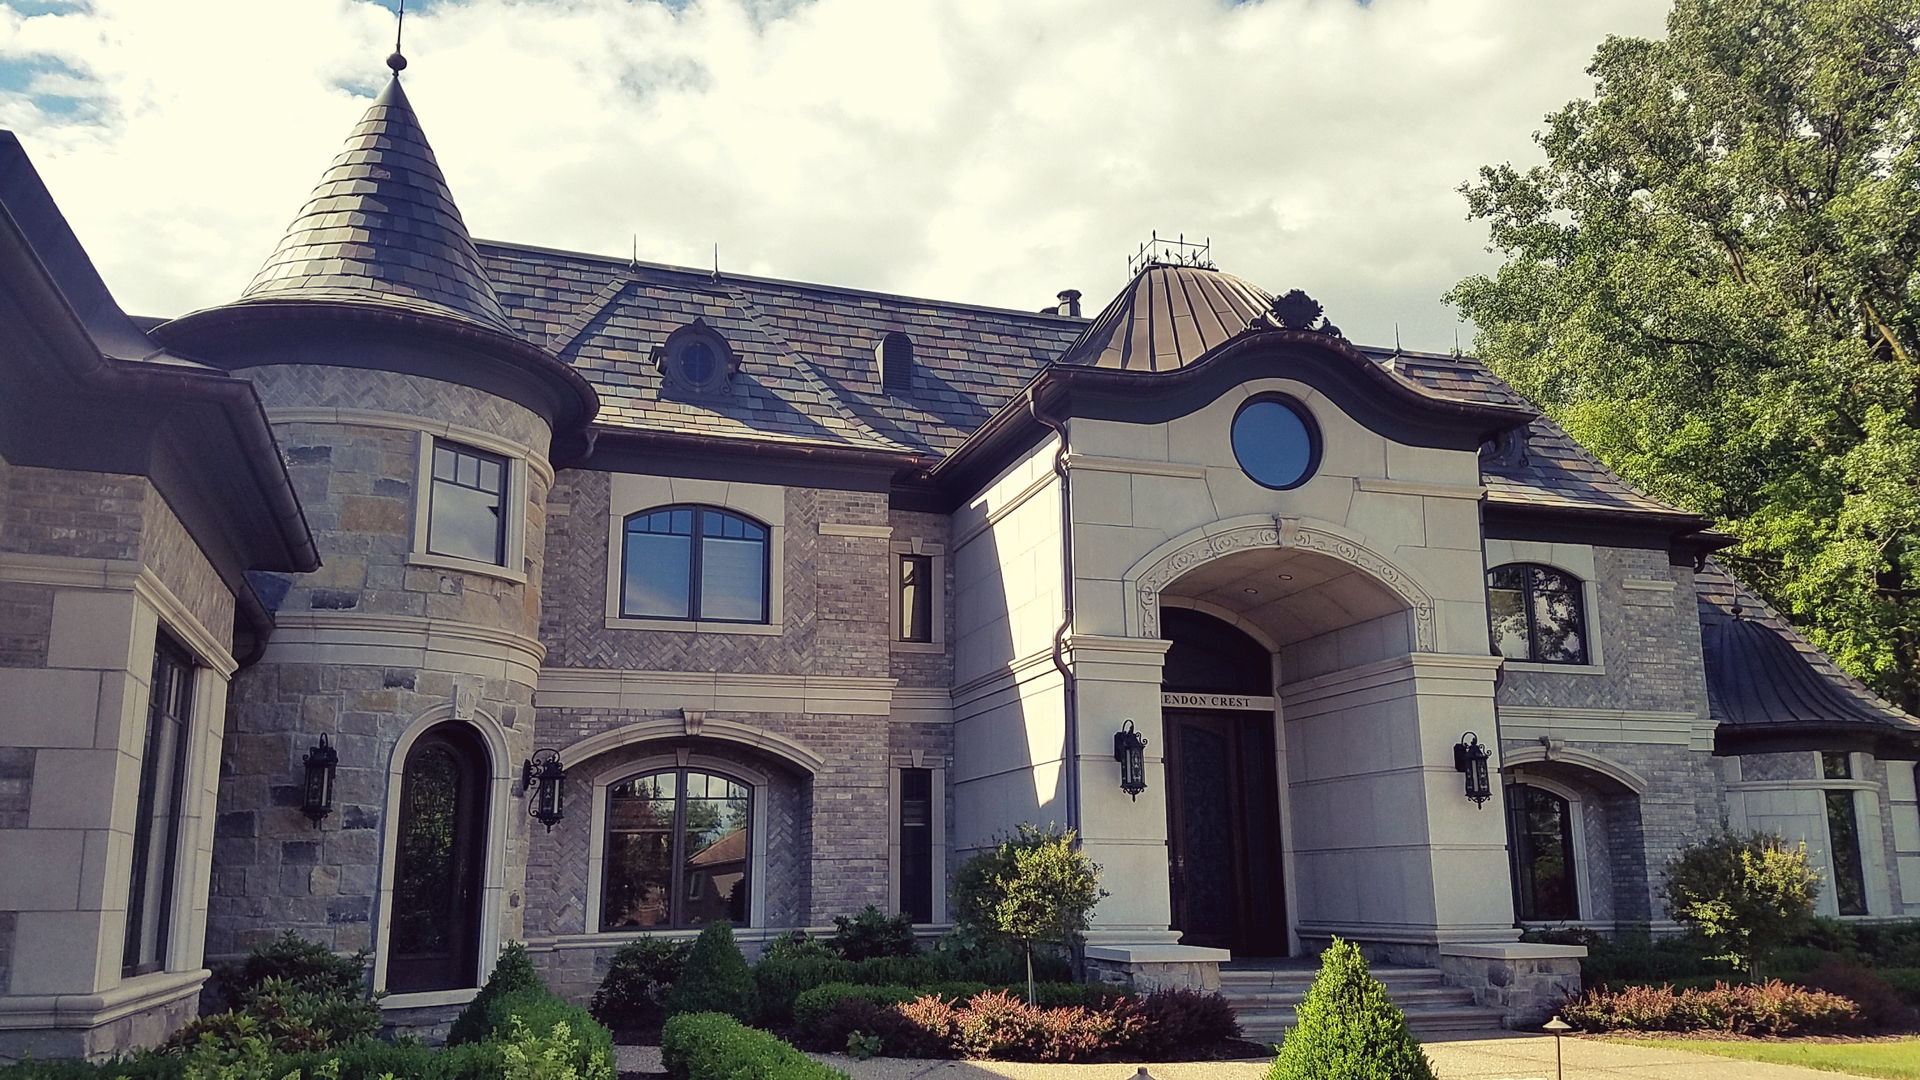 french chateau style residence bloomfield twp mi status completed 2016